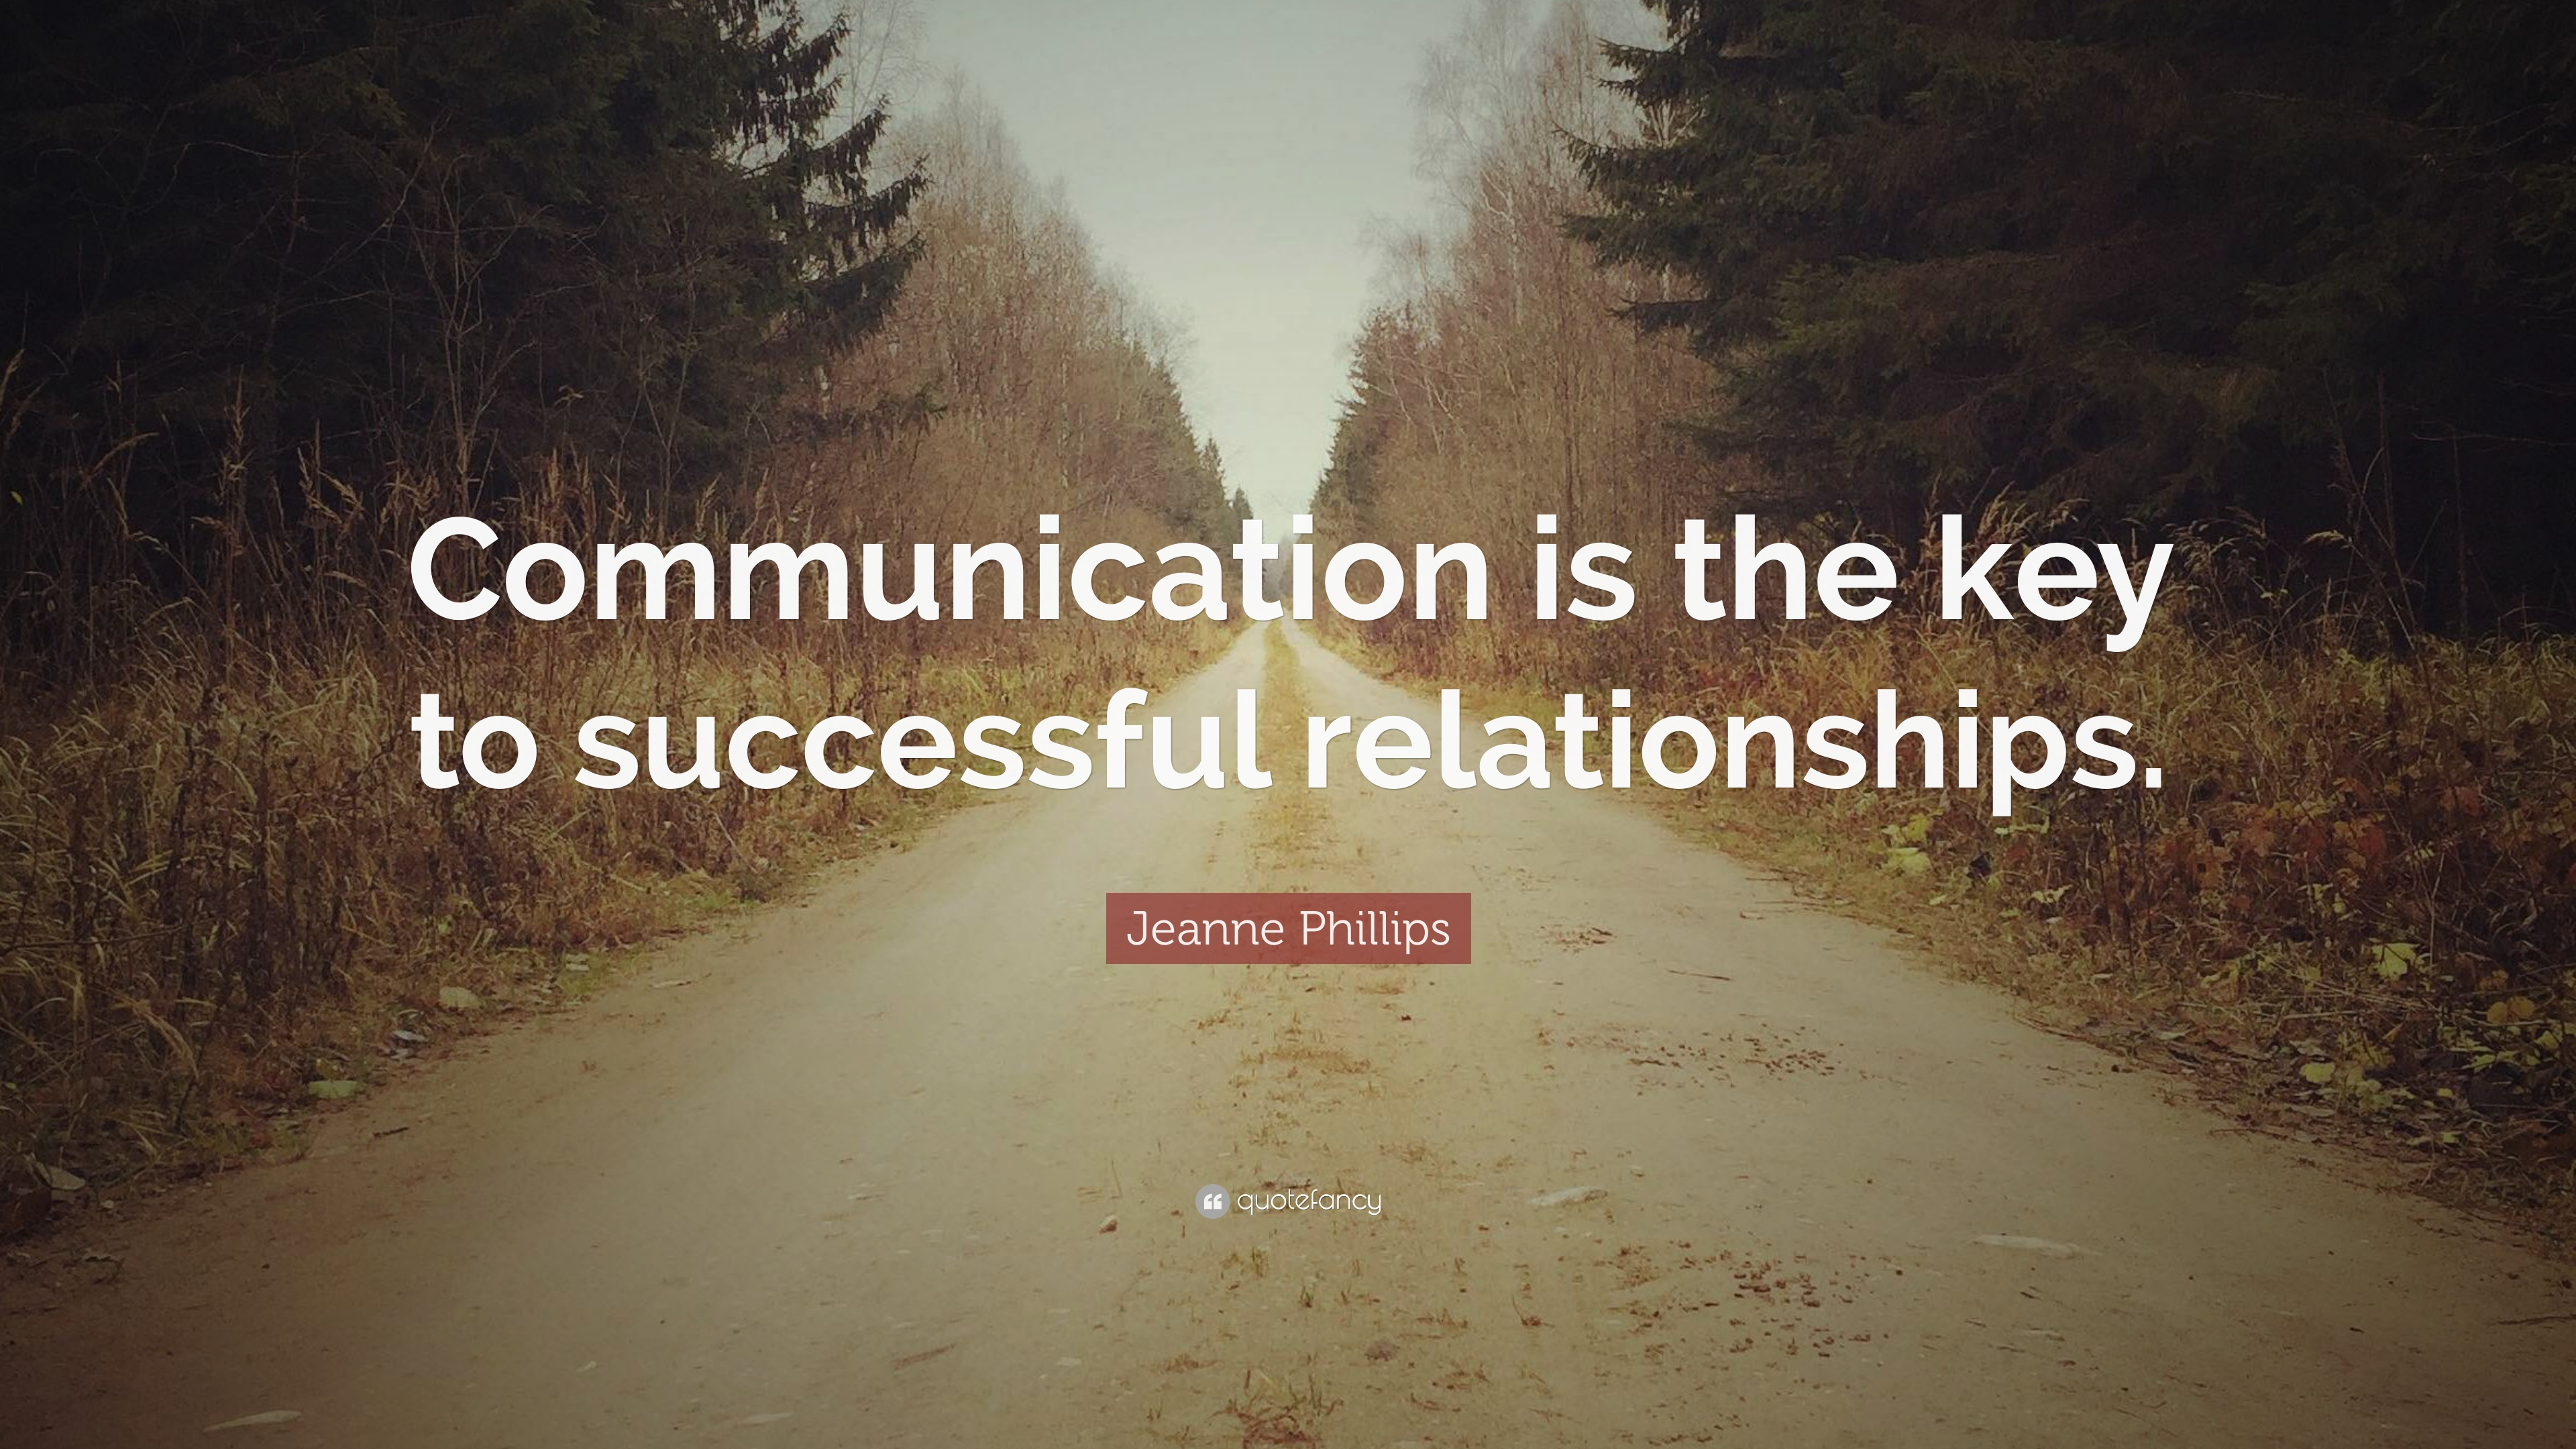 Communication in relationships quotes about 27 Important